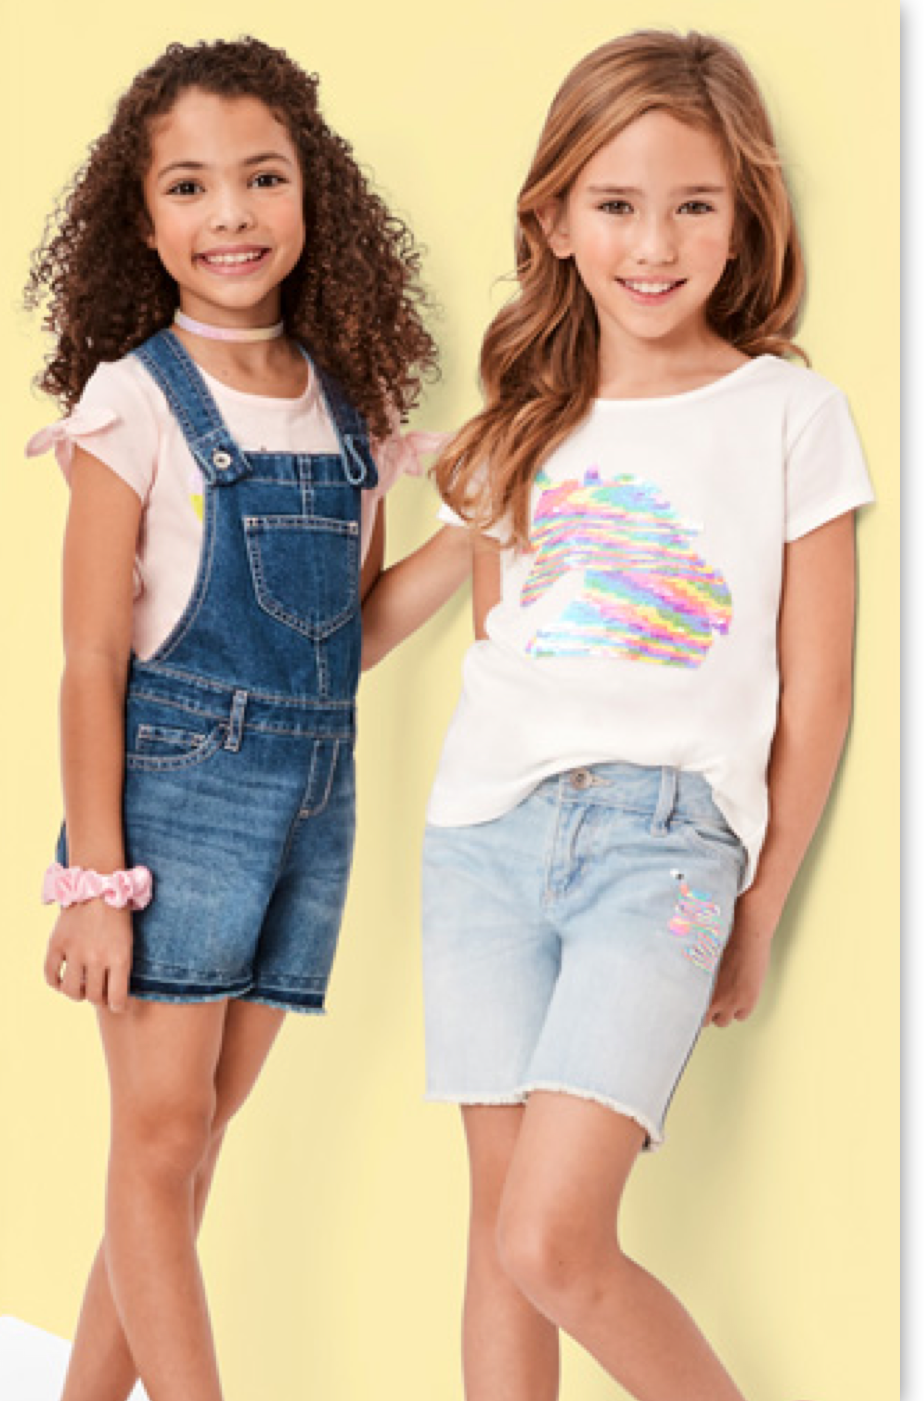 Details about  /Childrens Place Girls T Shirt  Black Gold Love Ruffle Trim